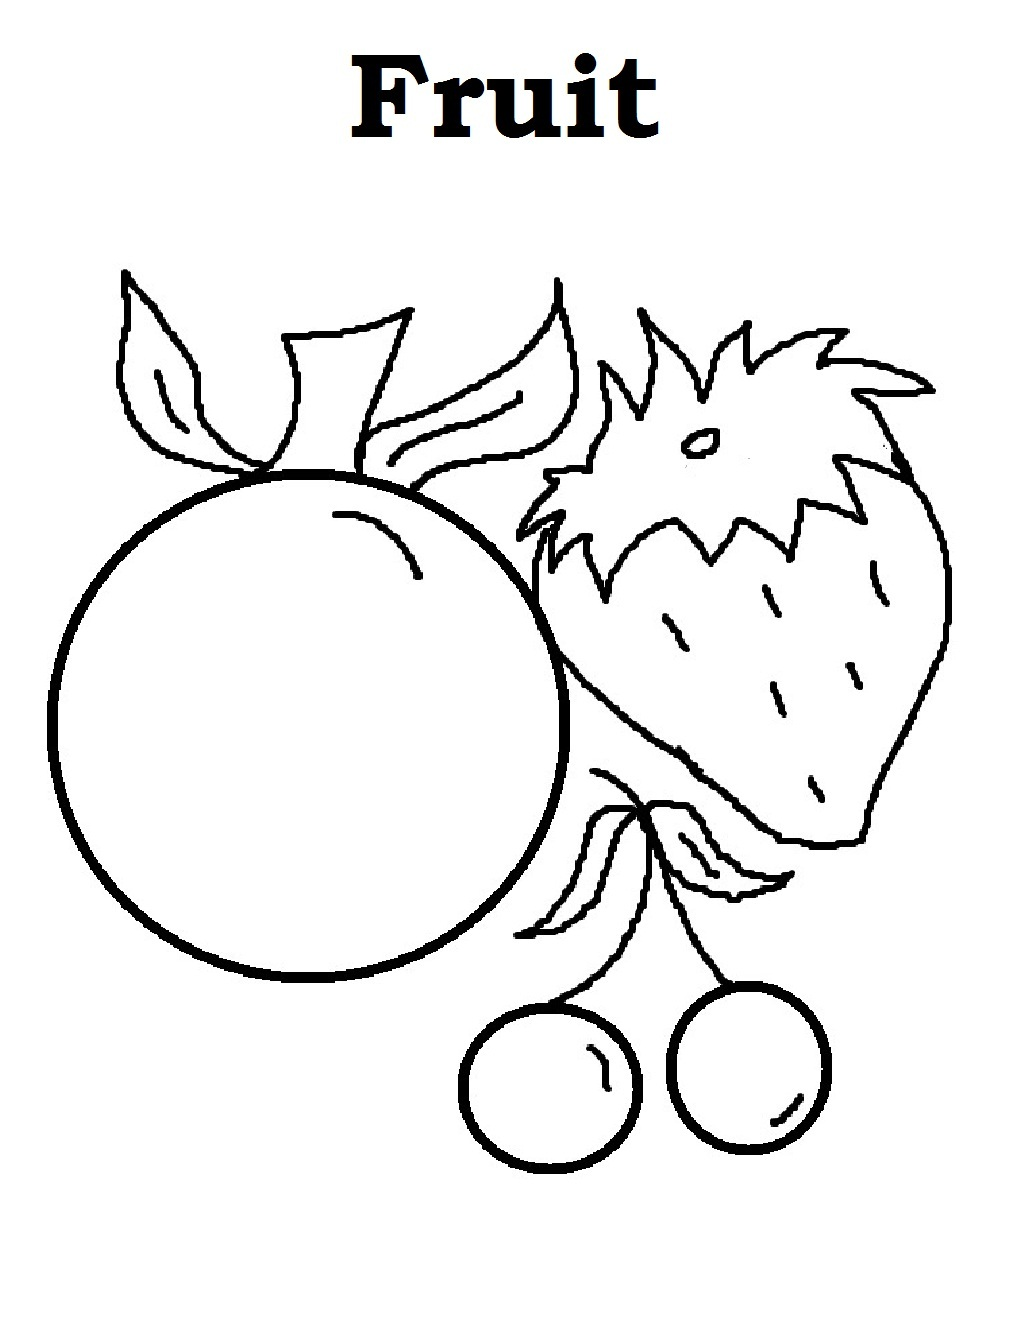 Fruit Coloring Pages Pictures